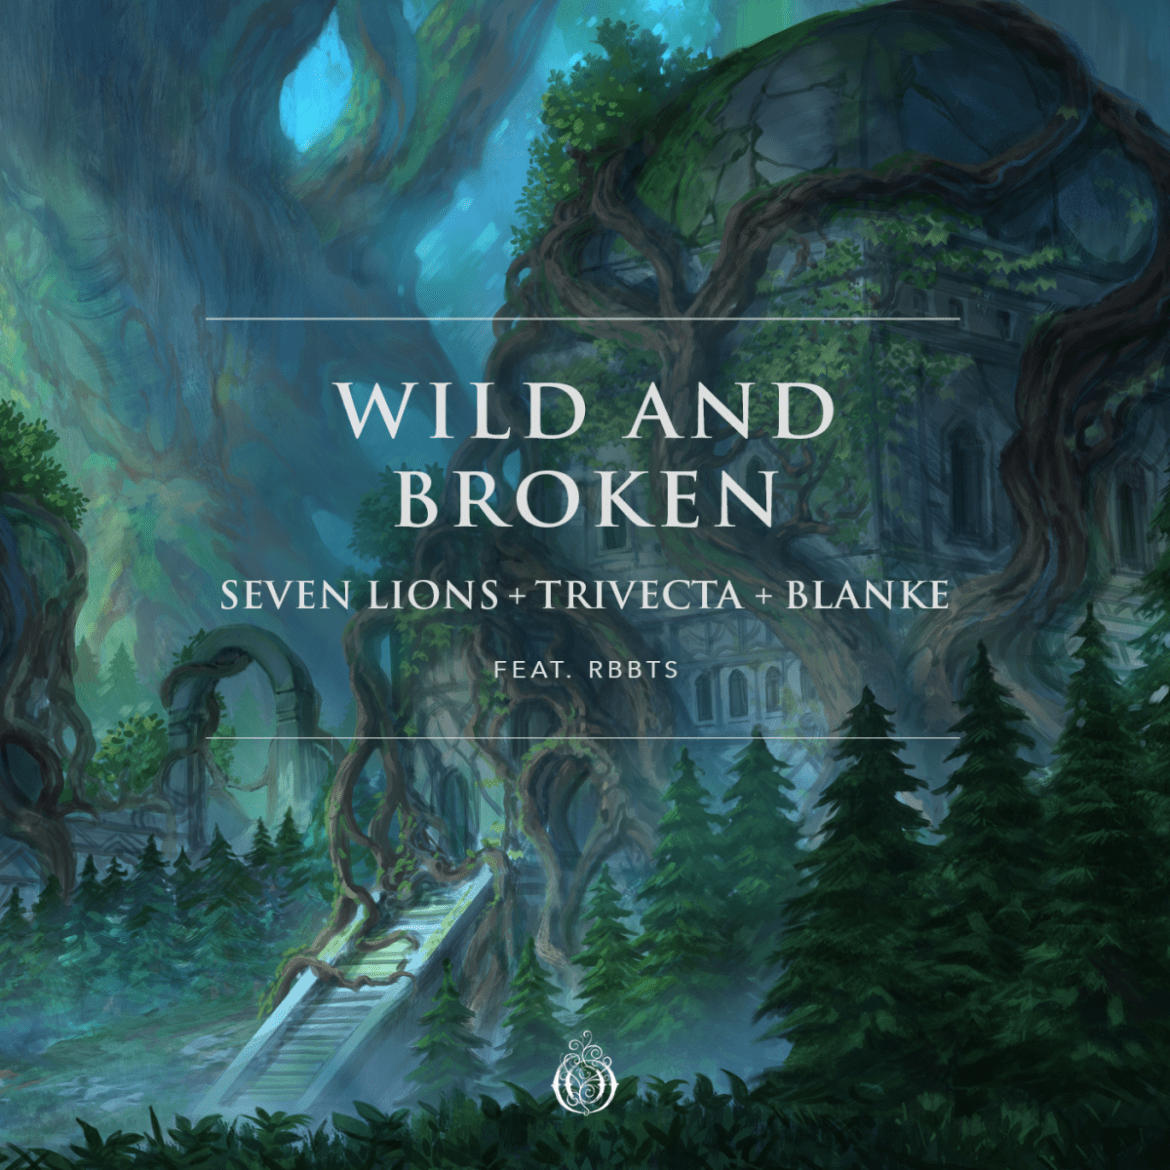 """Artwork for Seven Lions, Trivecta, Blanke, and RBBTS' """"Wild And Broken."""""""